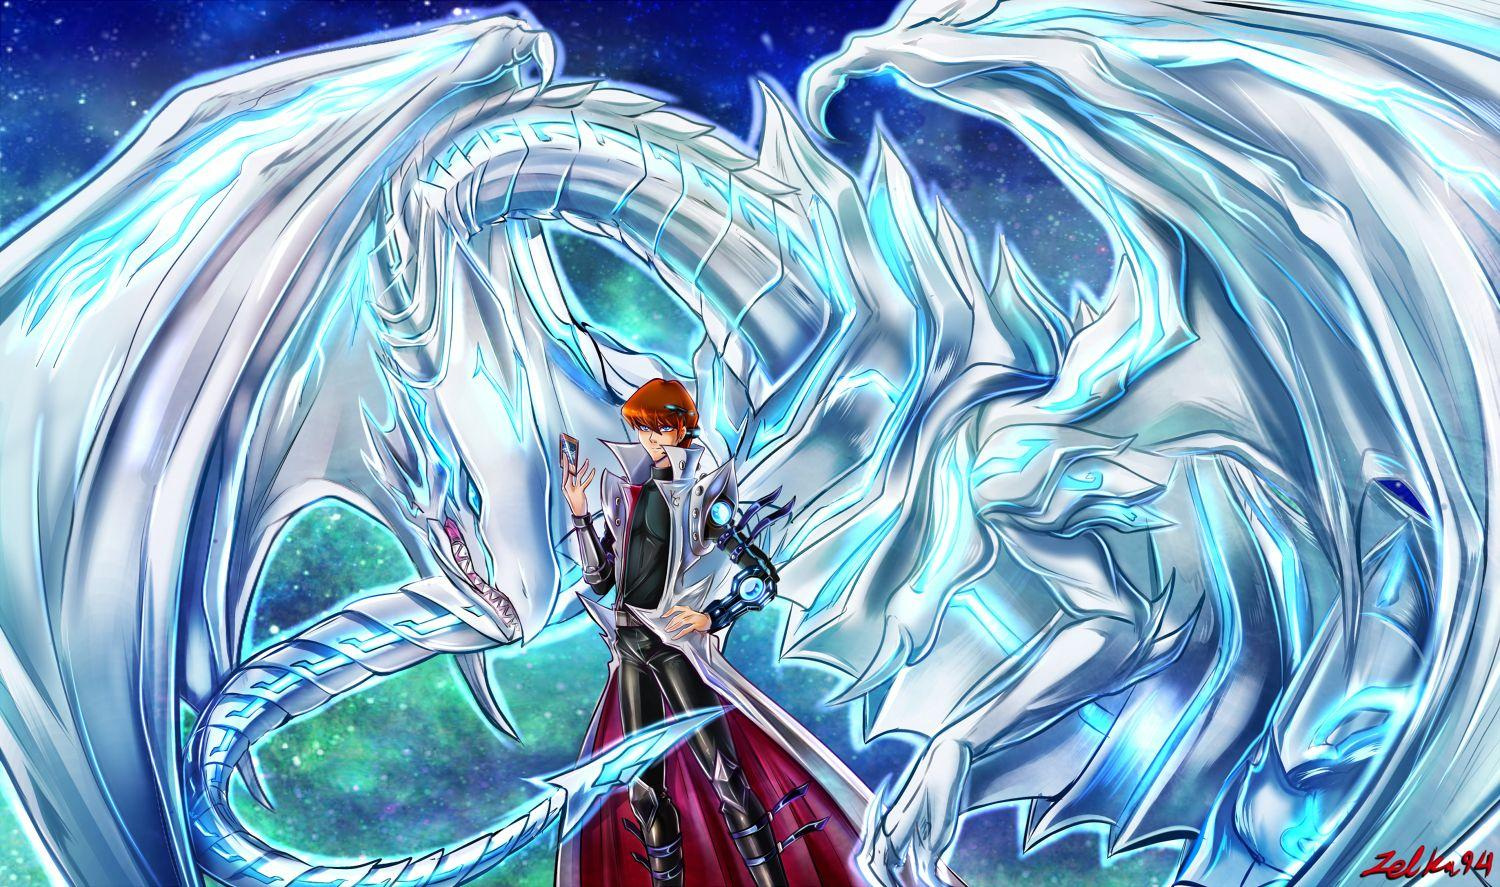 Yugioh Blue Eyes White Dragon Wallpapers Wallpaper Cave